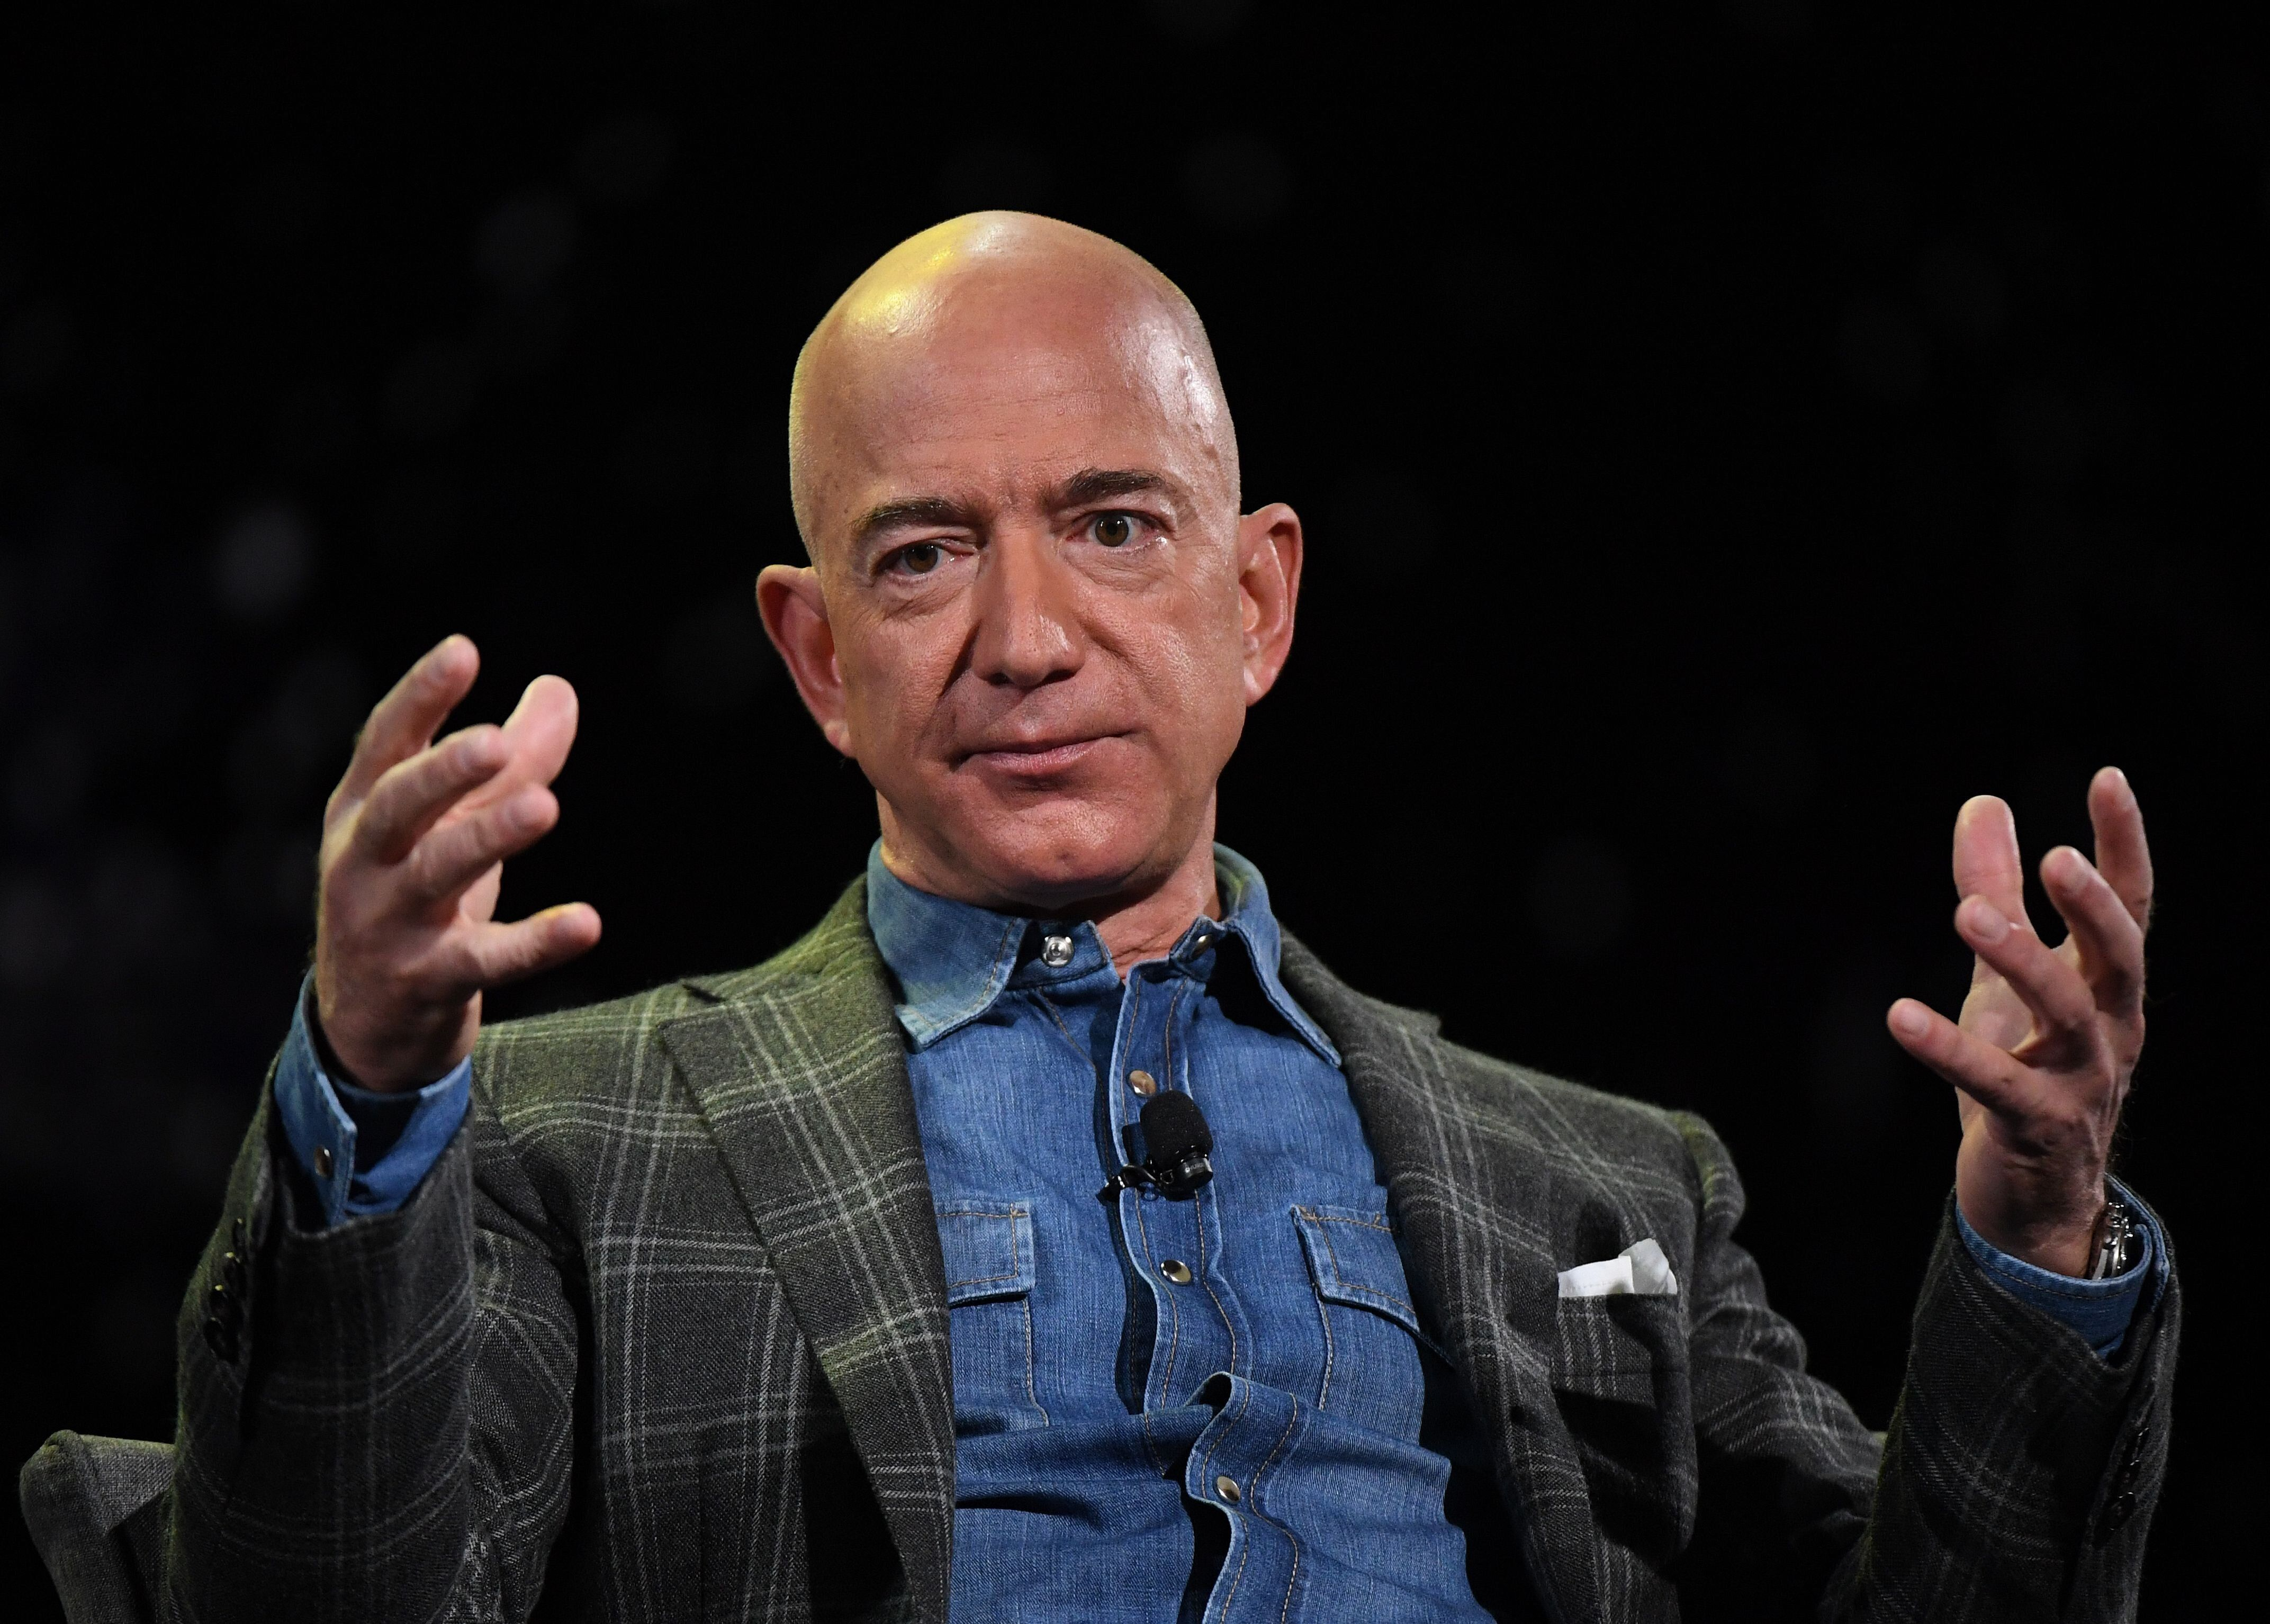 Amazon Founder and CEO Jeff Bezos in Las Vegas, Nevada on June 6, 2019. (Photo by Mark RALSTON / AFP) (Photo by MARK RALSTON/